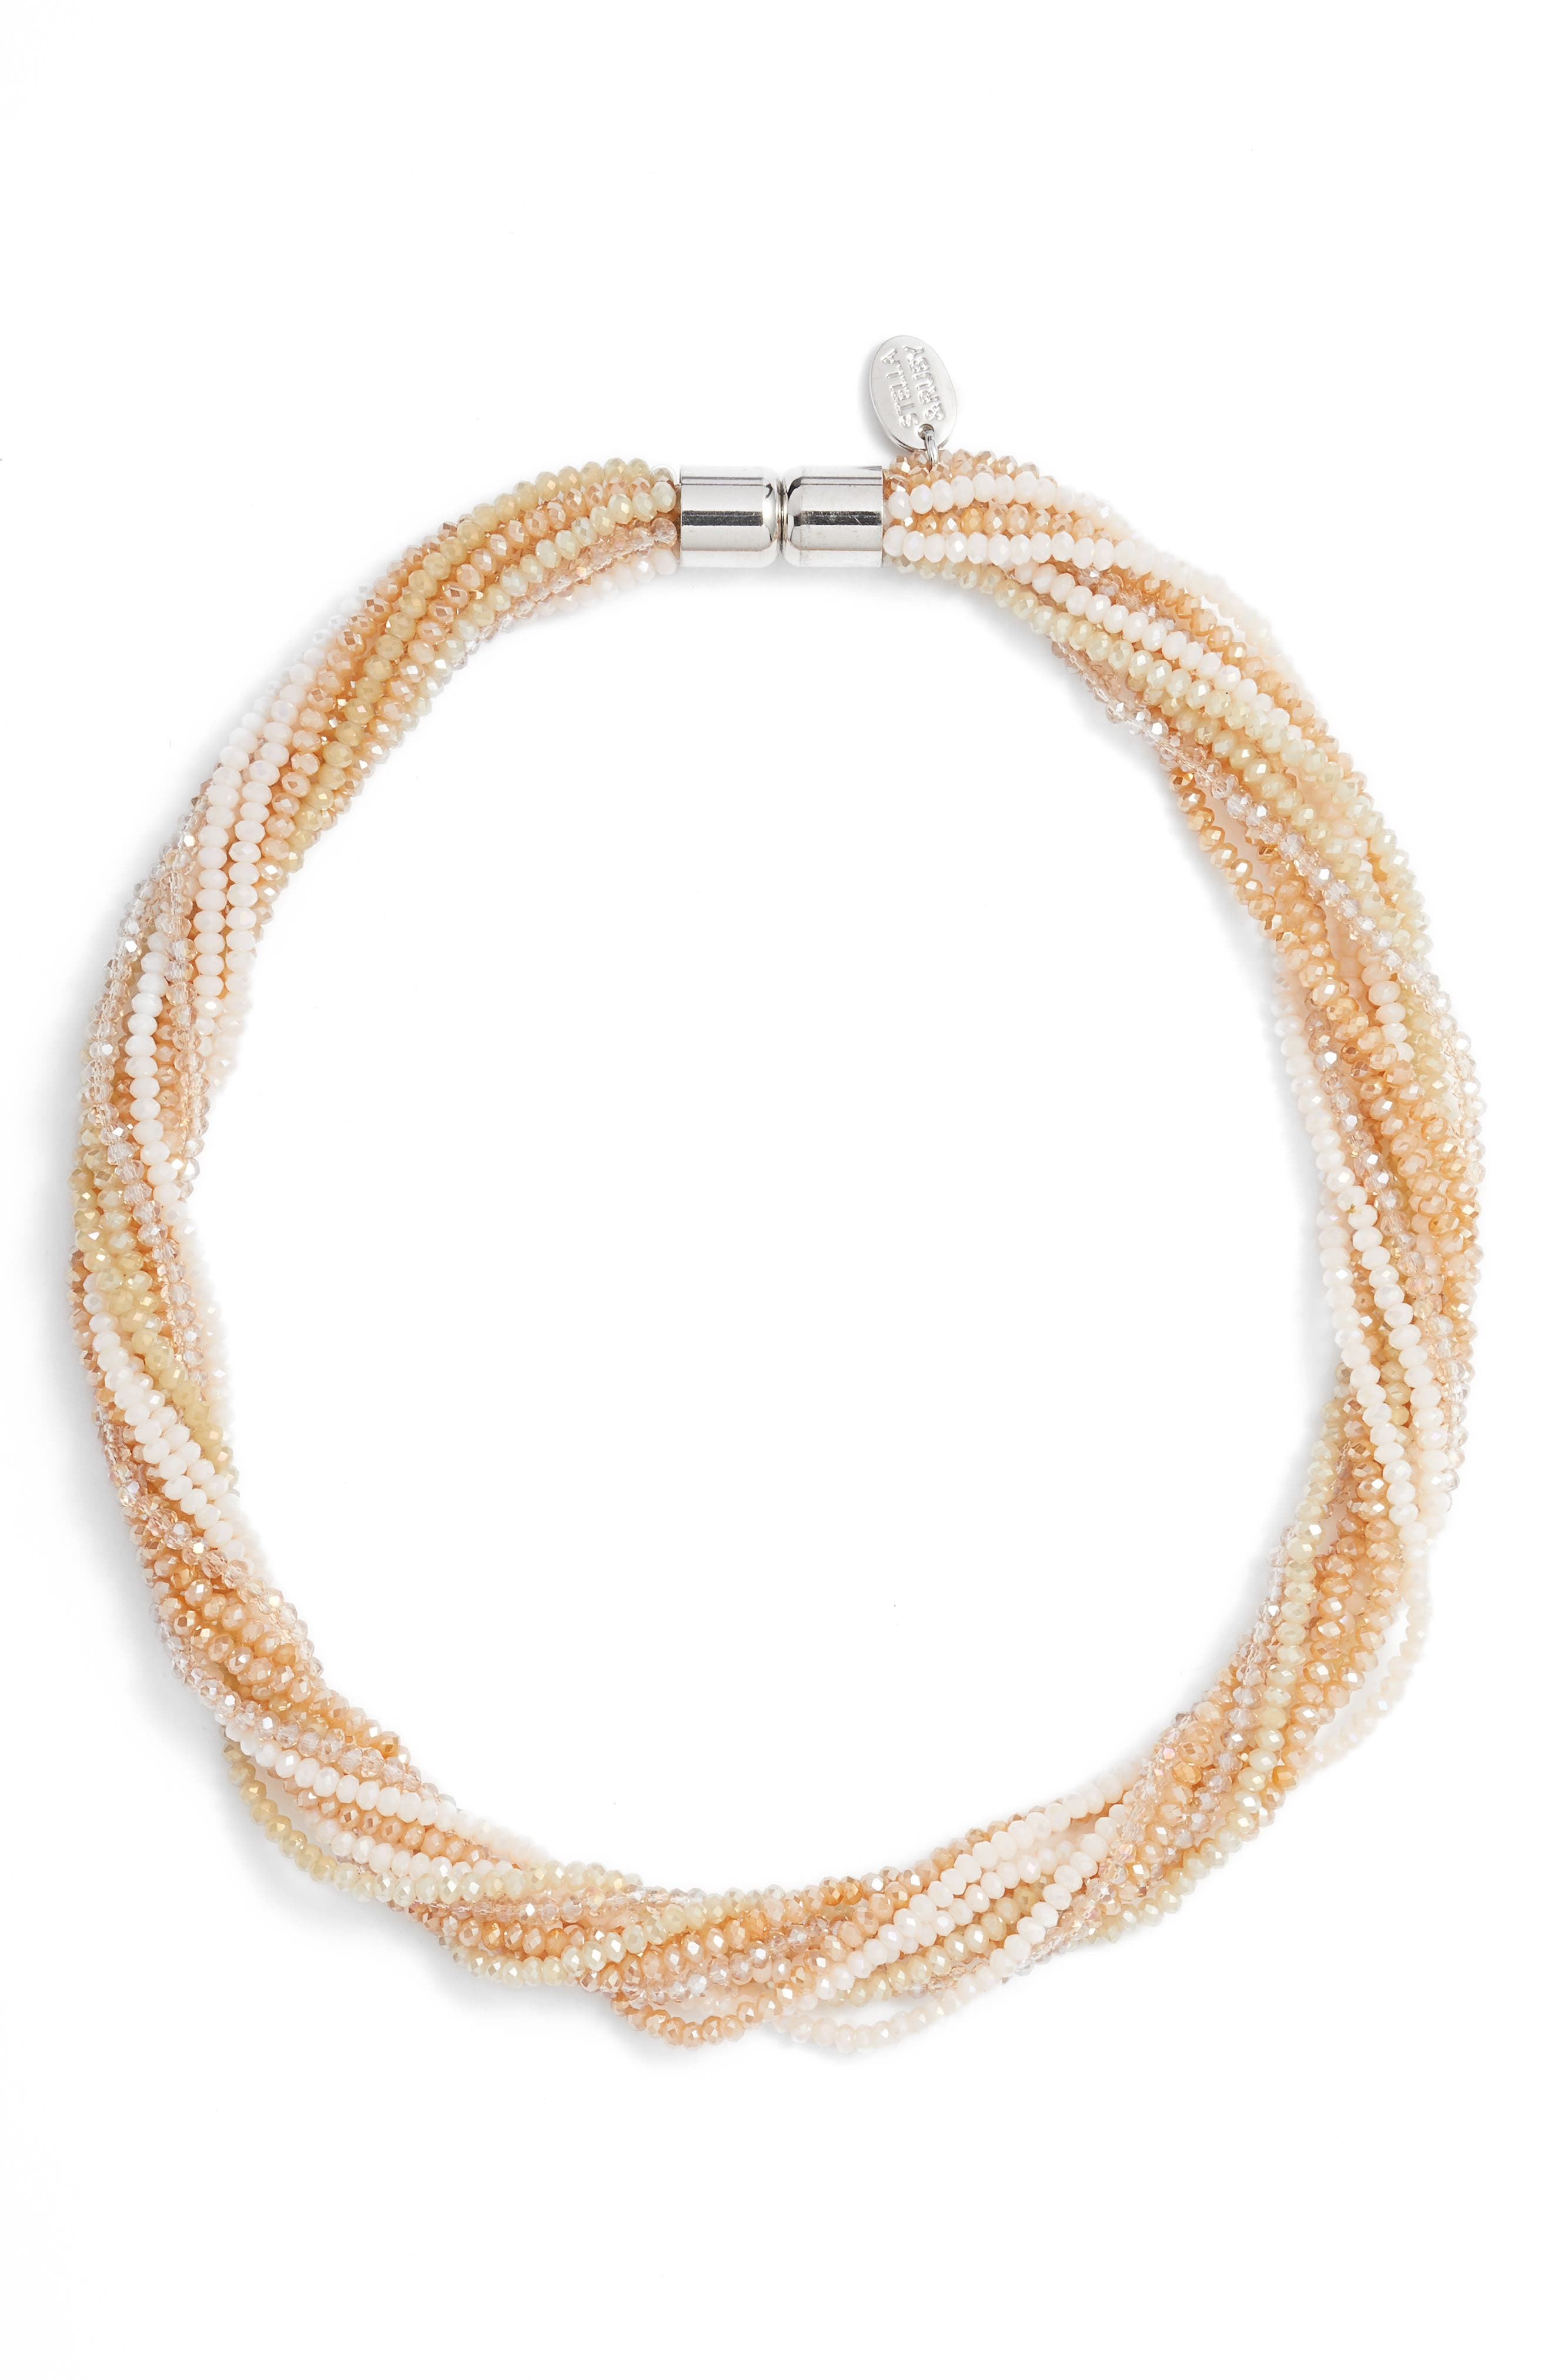 Multi Strand Beaded Necklace,                             Main thumbnail 1, color,                             Silver/ Neutral